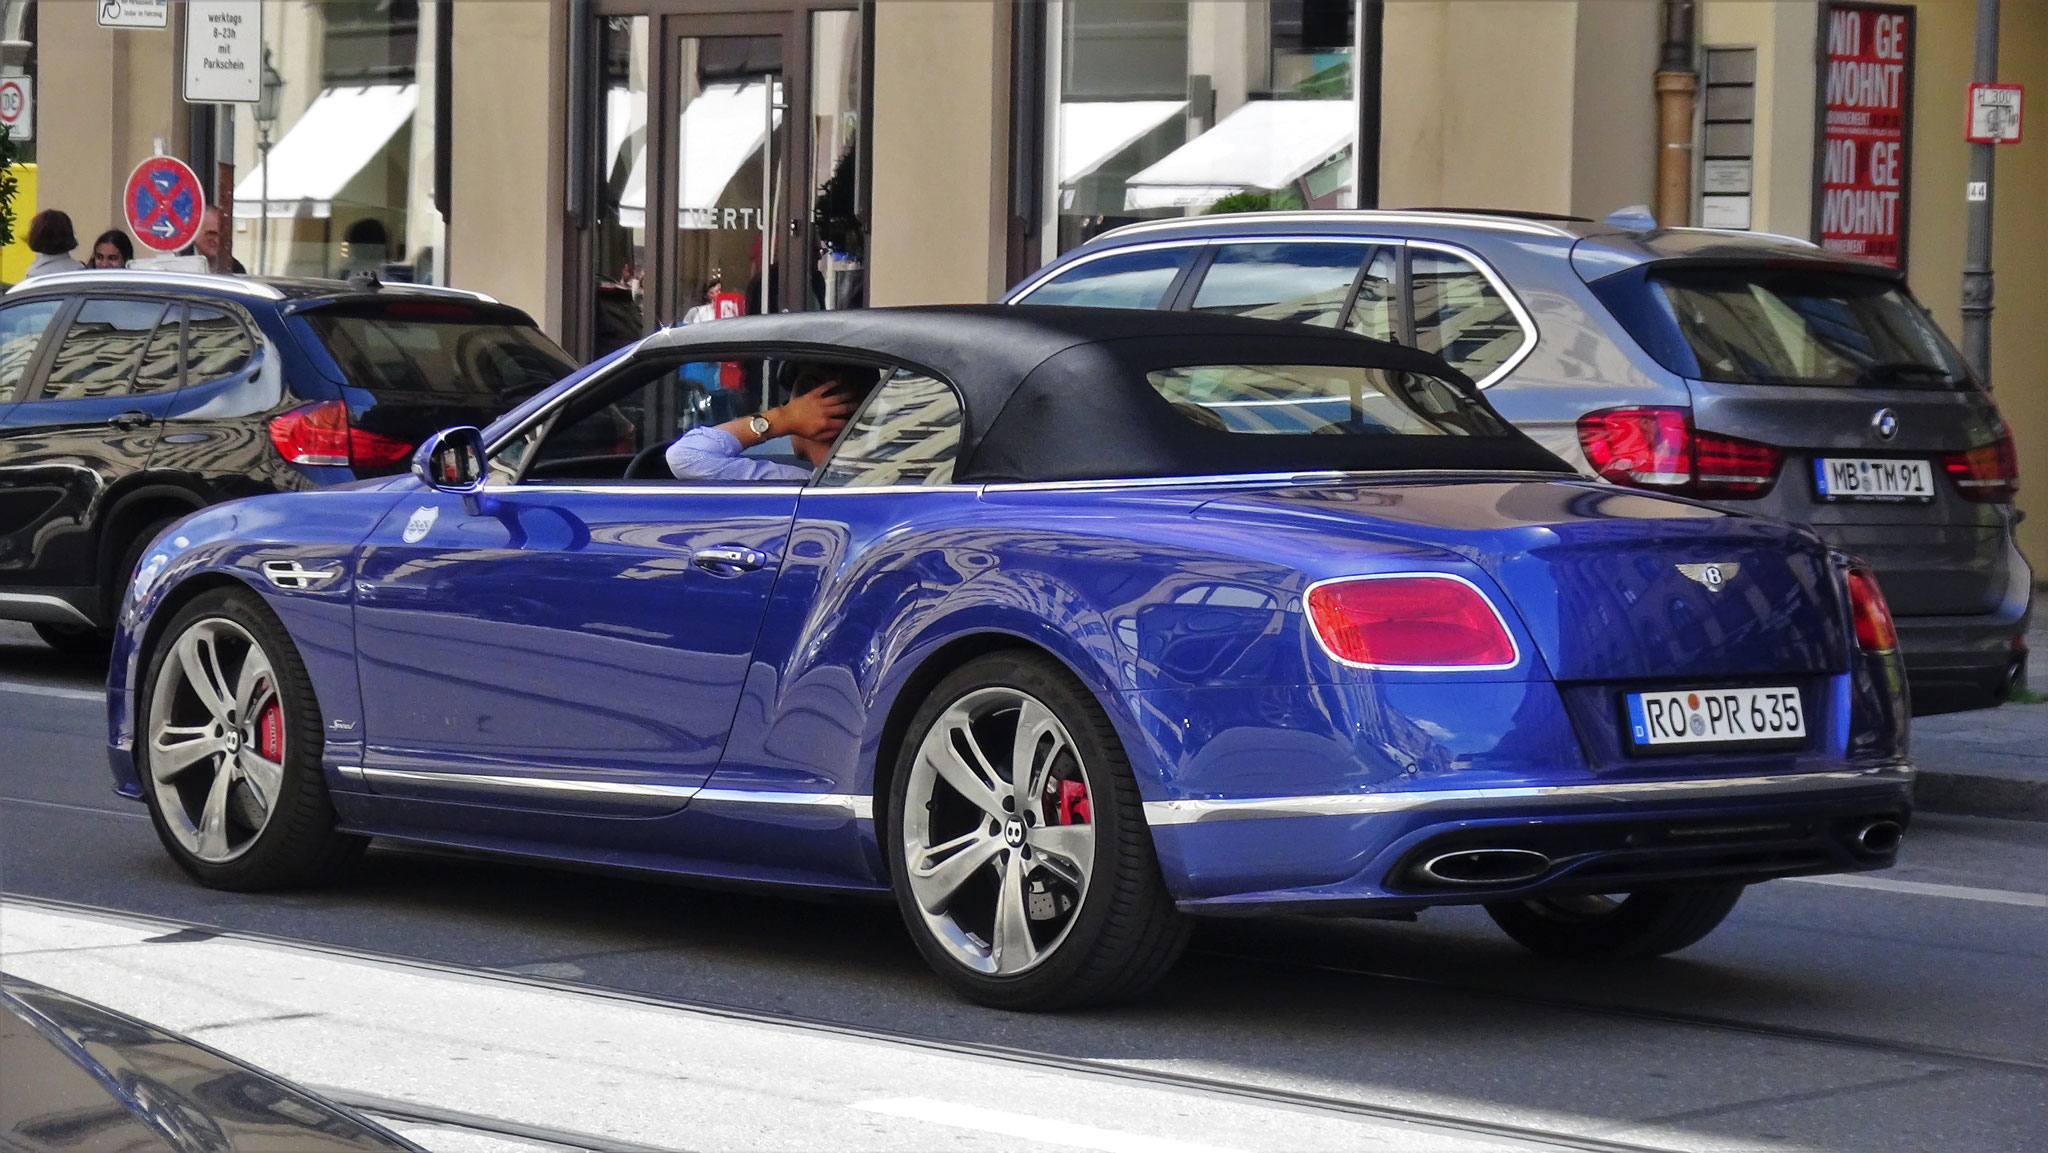 Bentley Continental GTC Speed - RO-PR-635